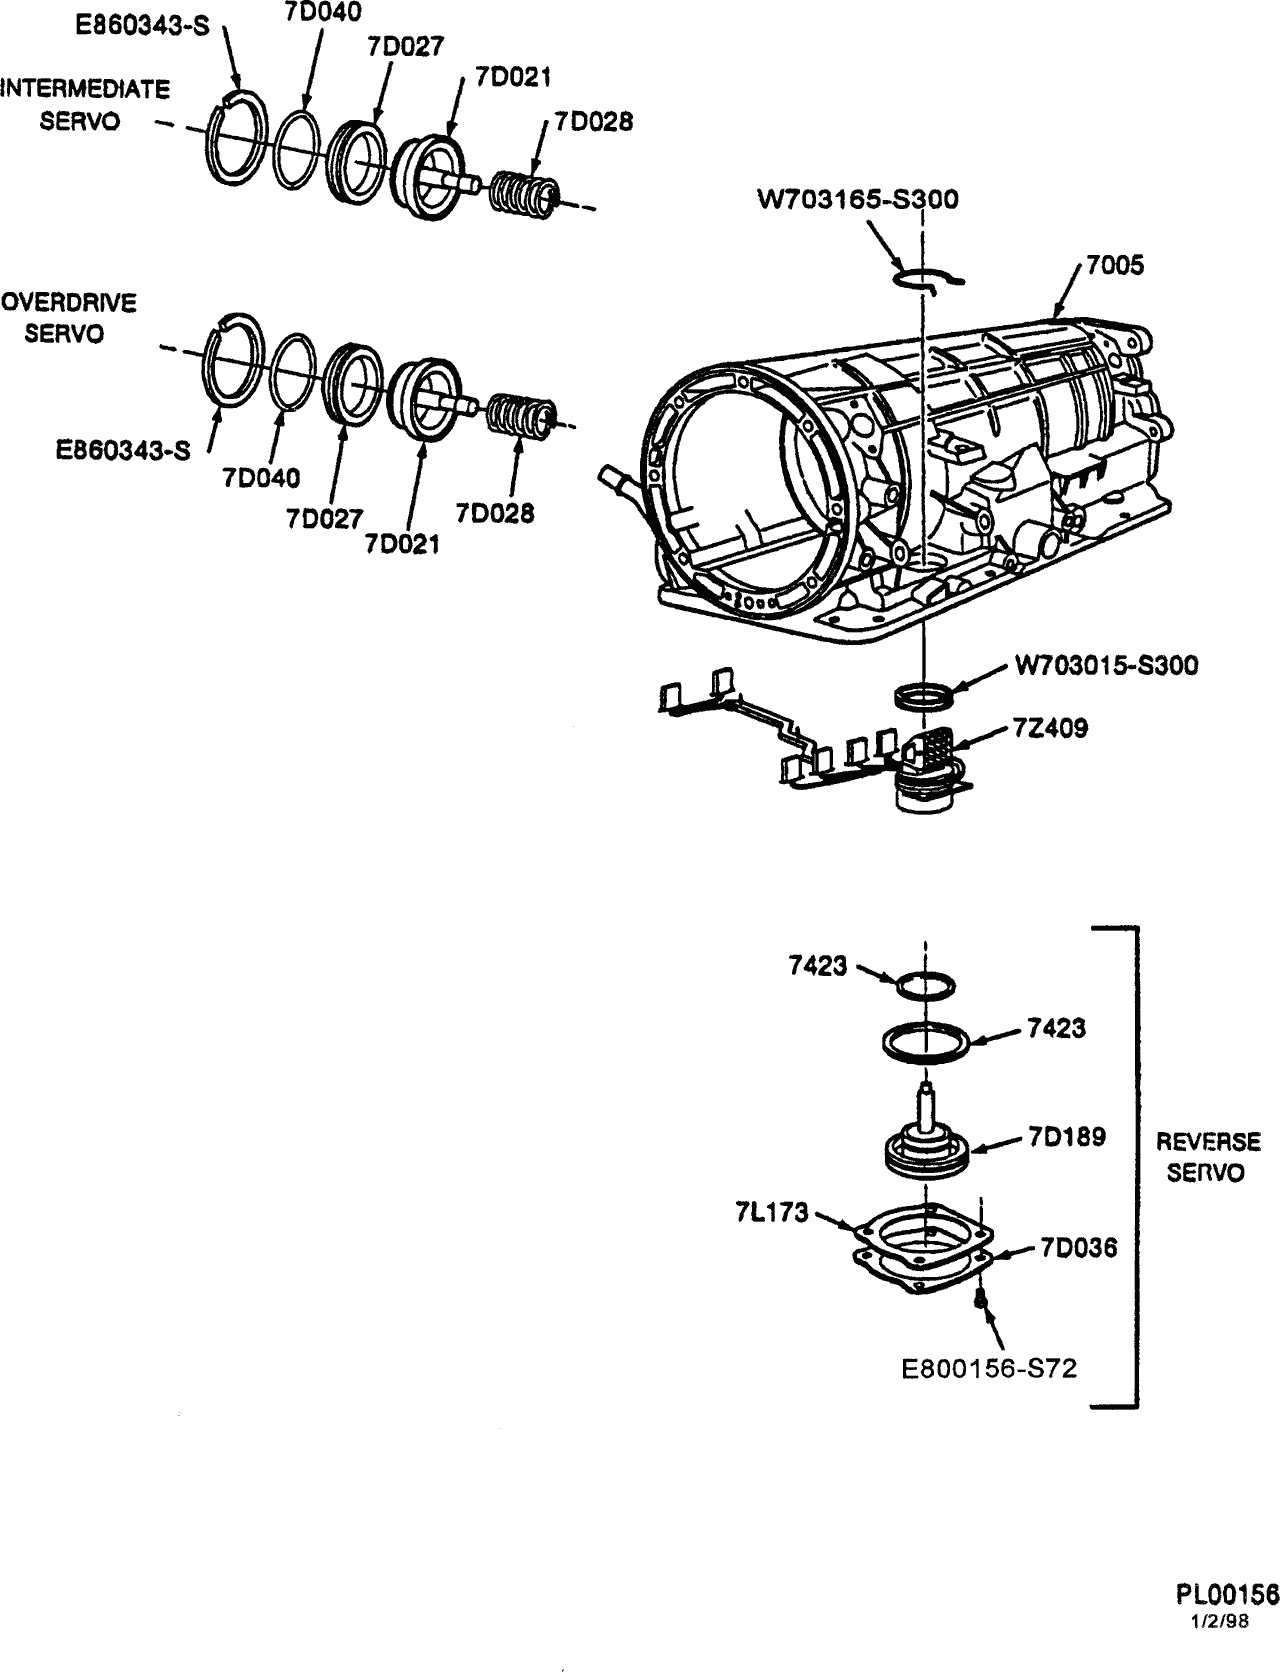 84 Ford F 150 Xlt Wiring Diagram 1997 Ford F150 Fuse